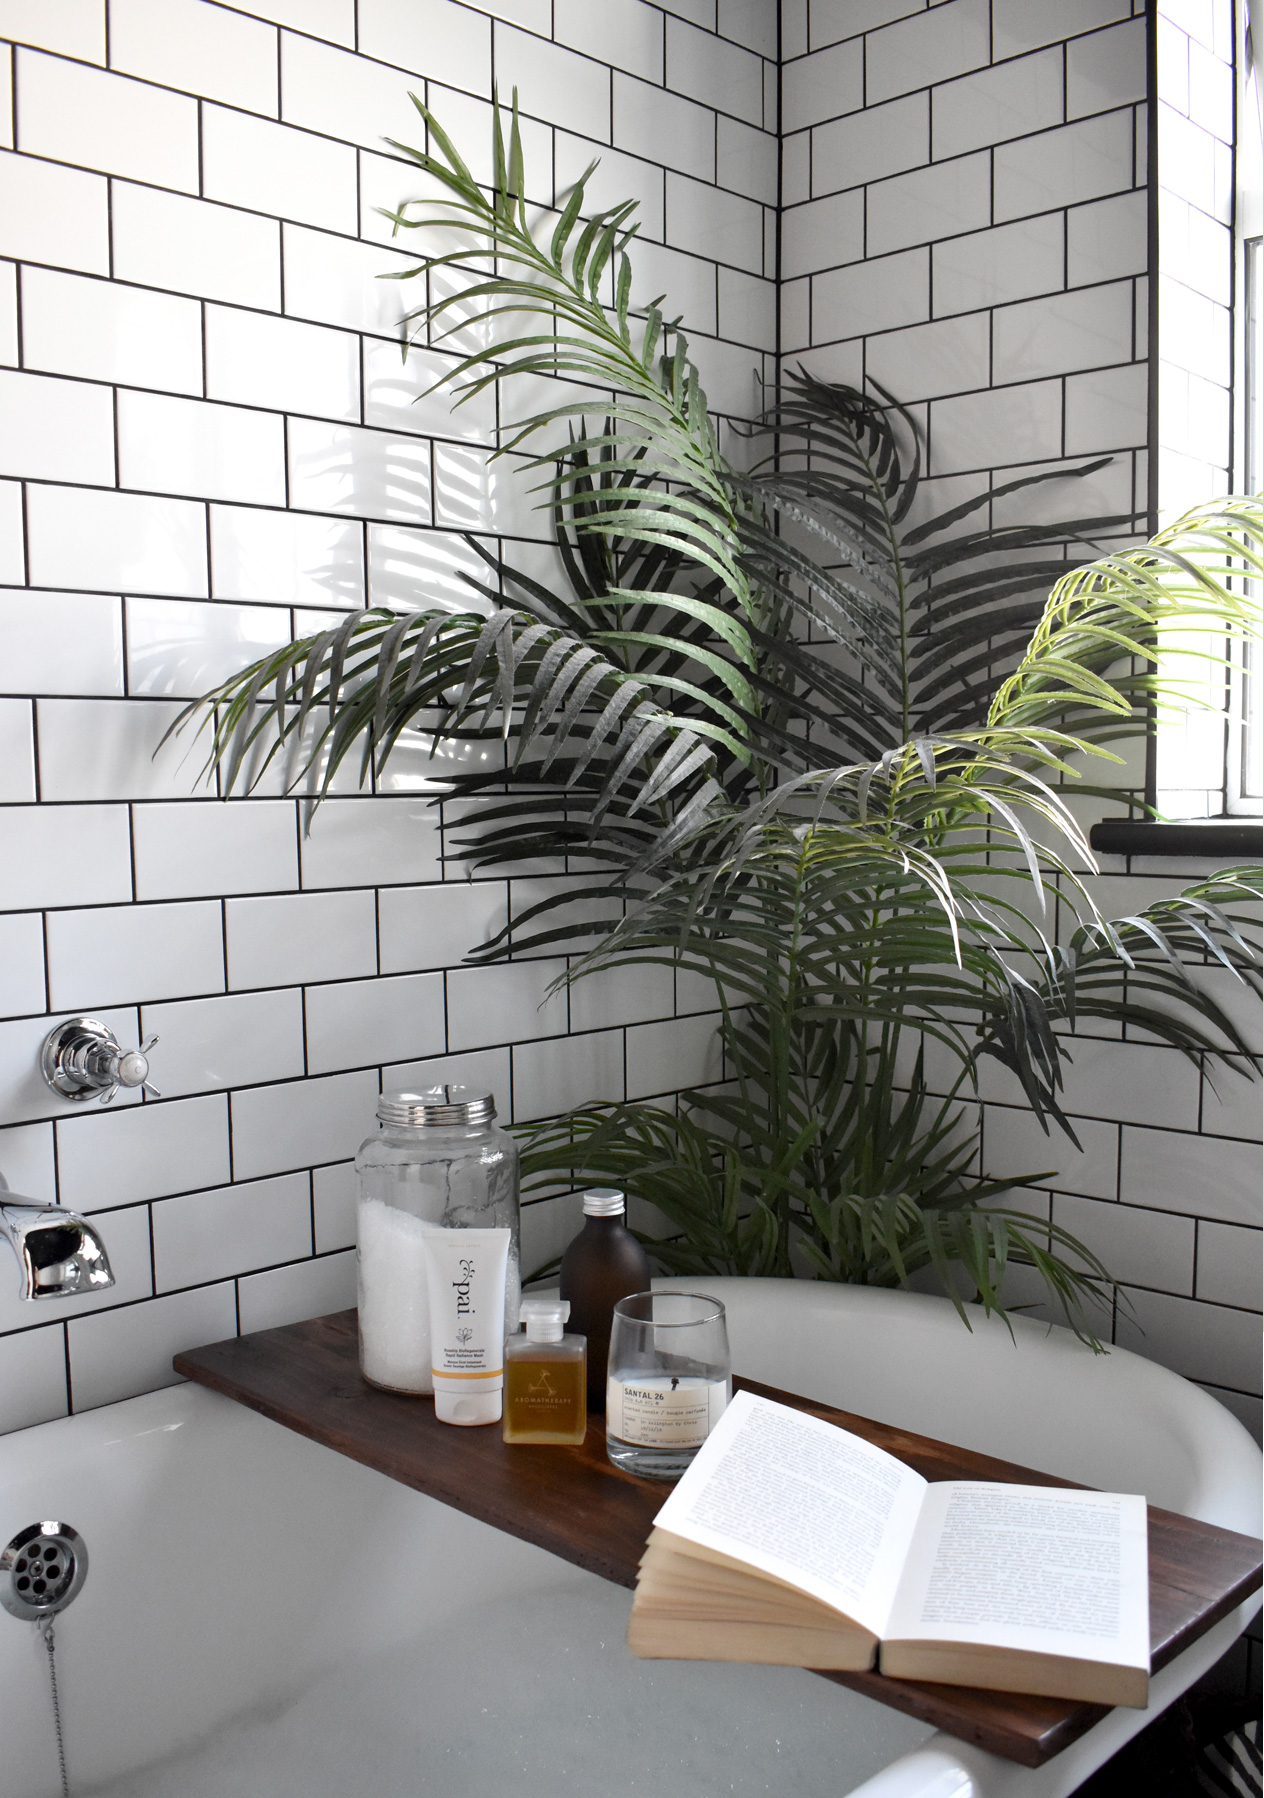 A serene white bathroom with white metro tiles and black grout, a green leafy plan and an array of luxurious bath products.